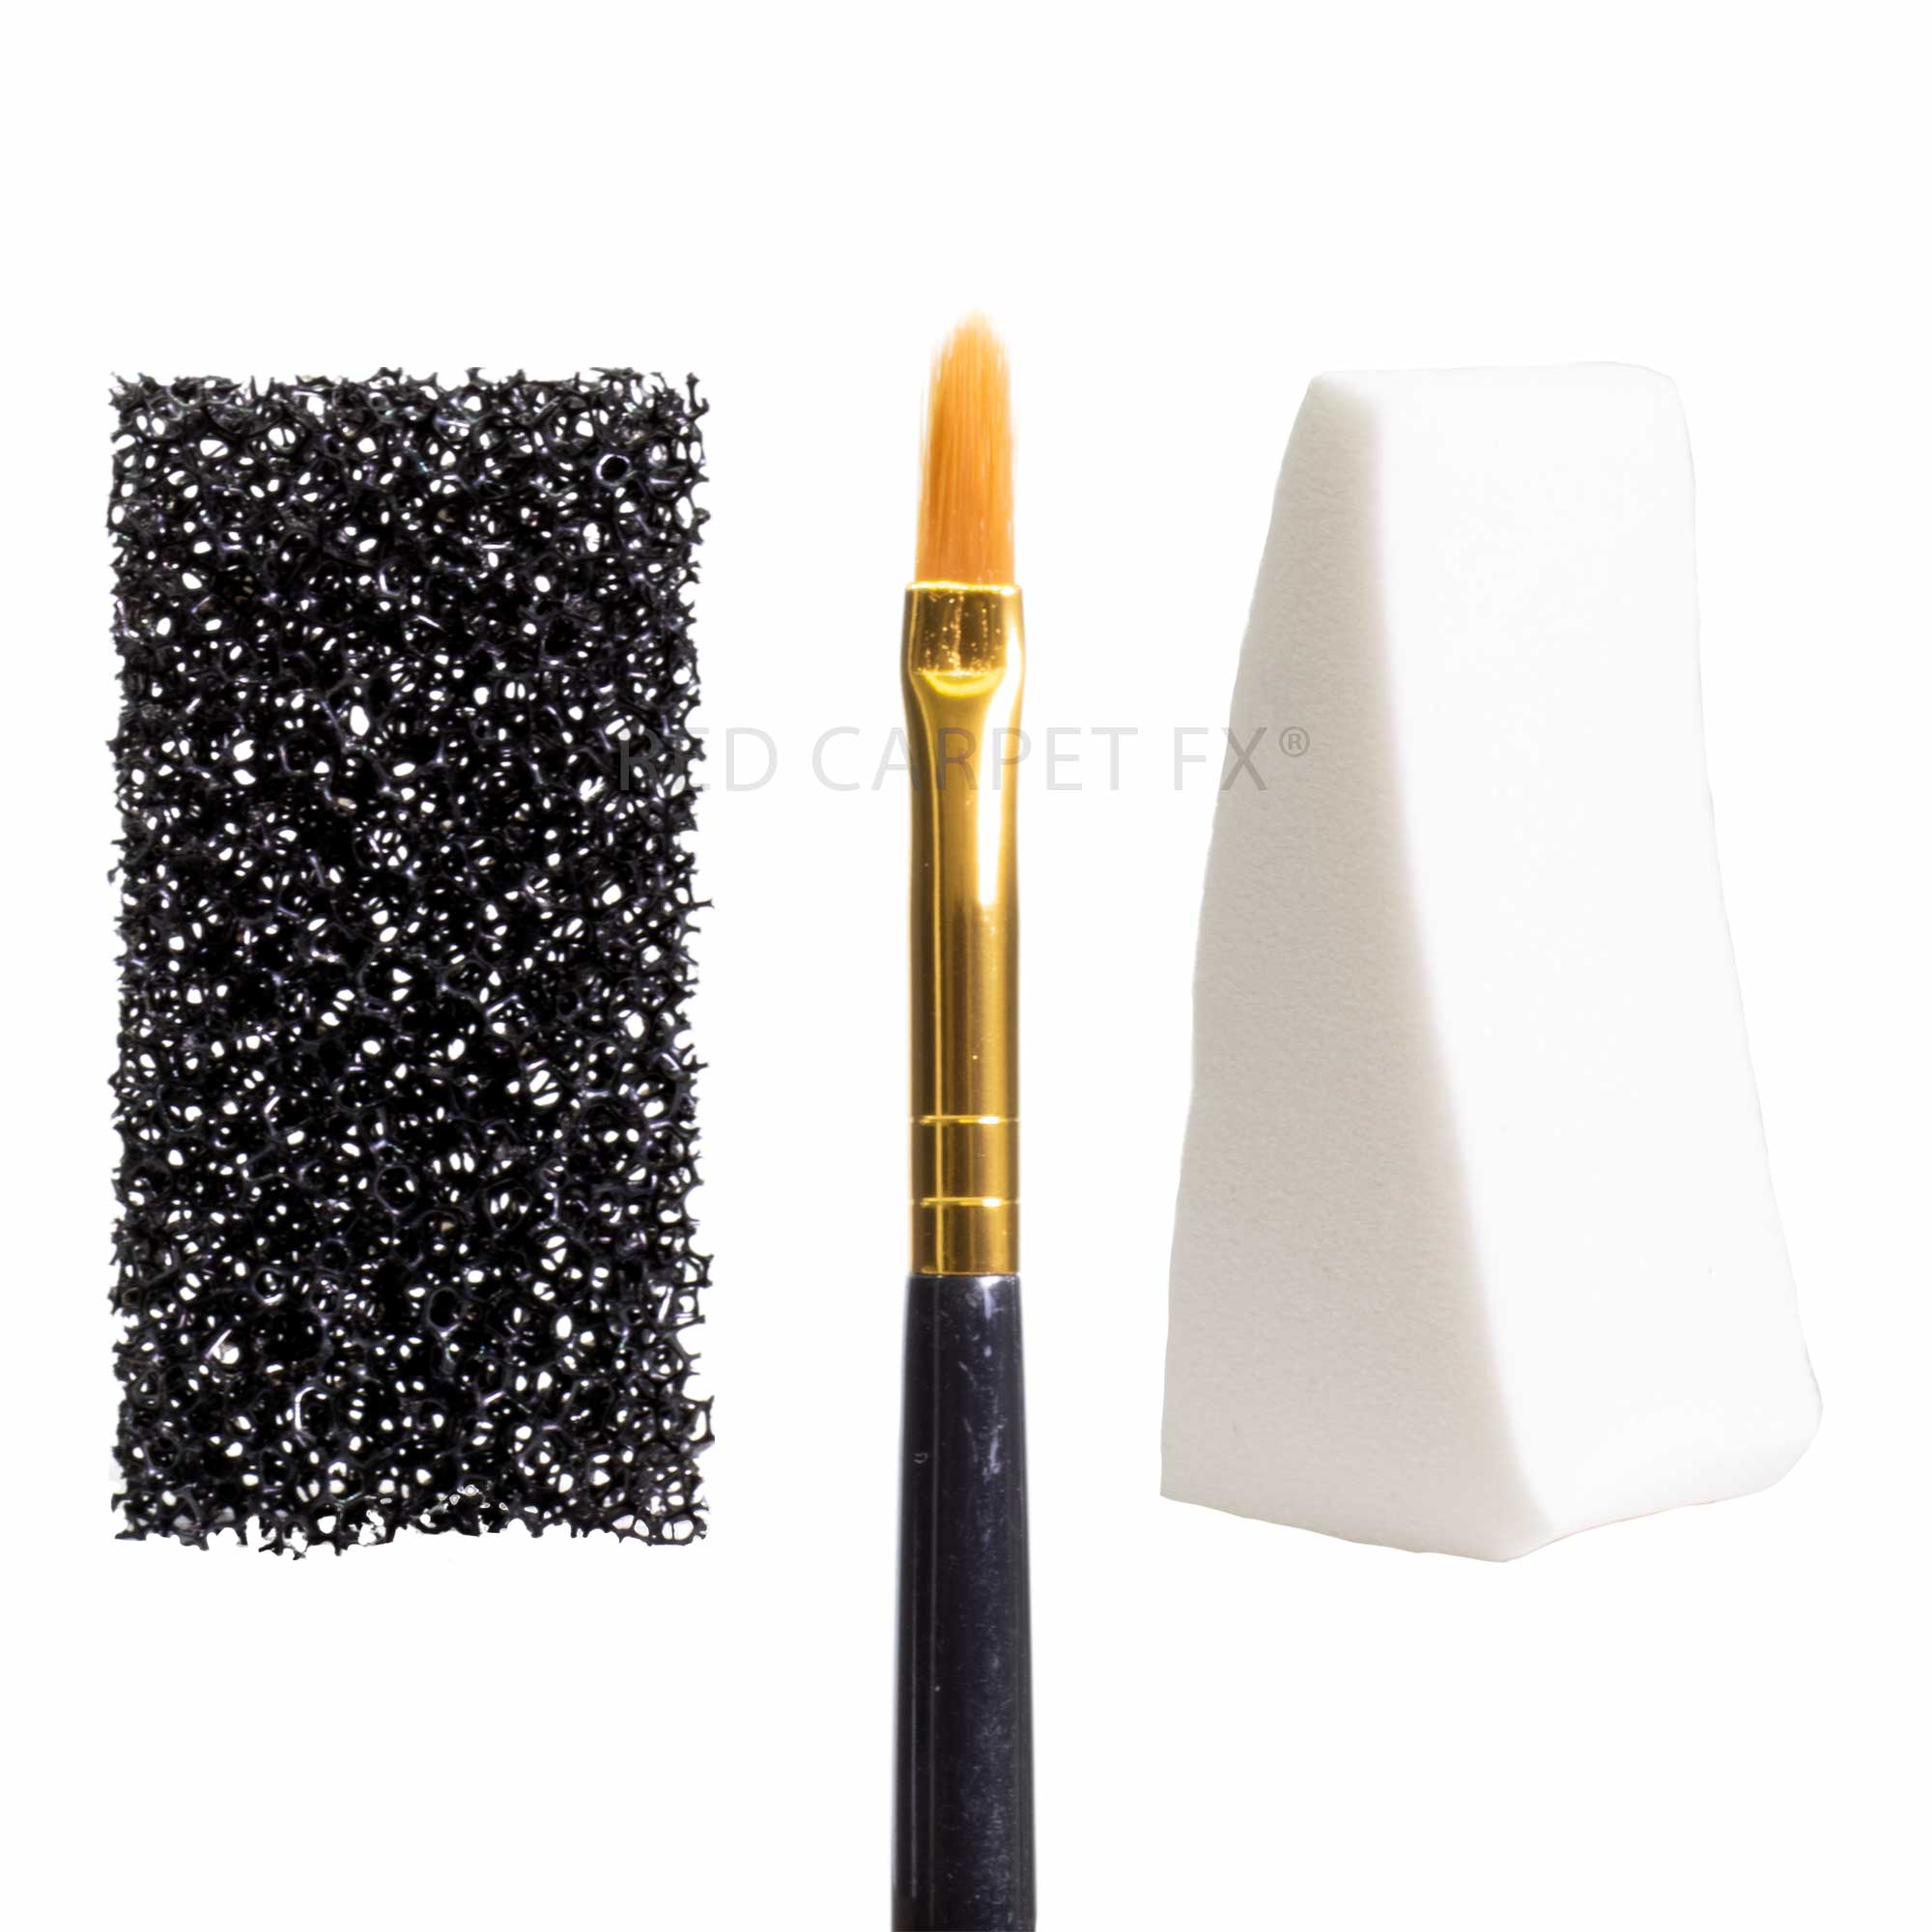 Make-up FX Filbert Brush, Stipple Sponge & Wedge Set